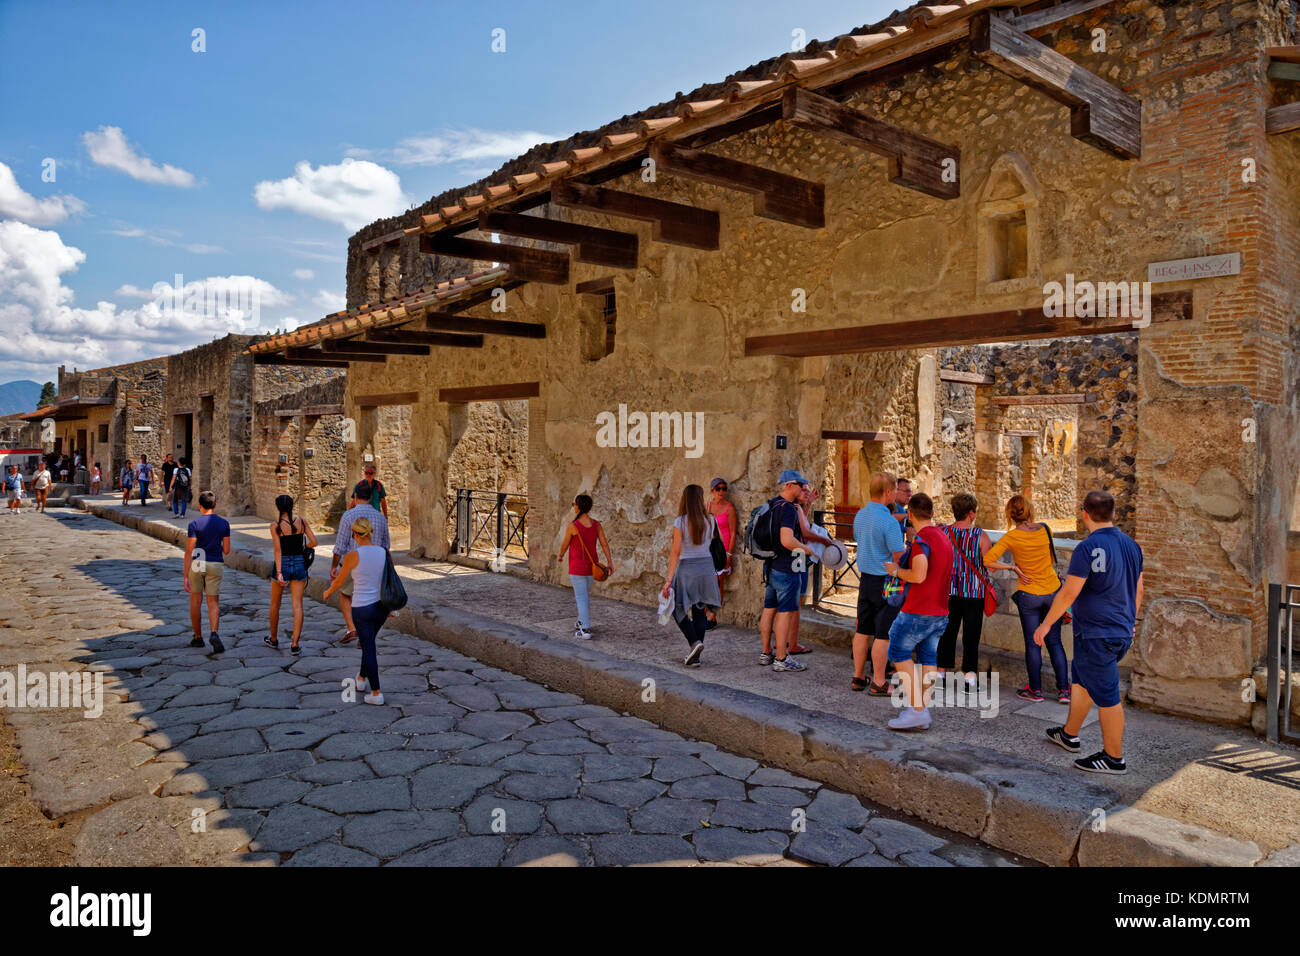 Street and cafe/shop in the ruined Roman city of Pompeii at Pompei Scavi, near Naples, Southern Italy. Stock Photo